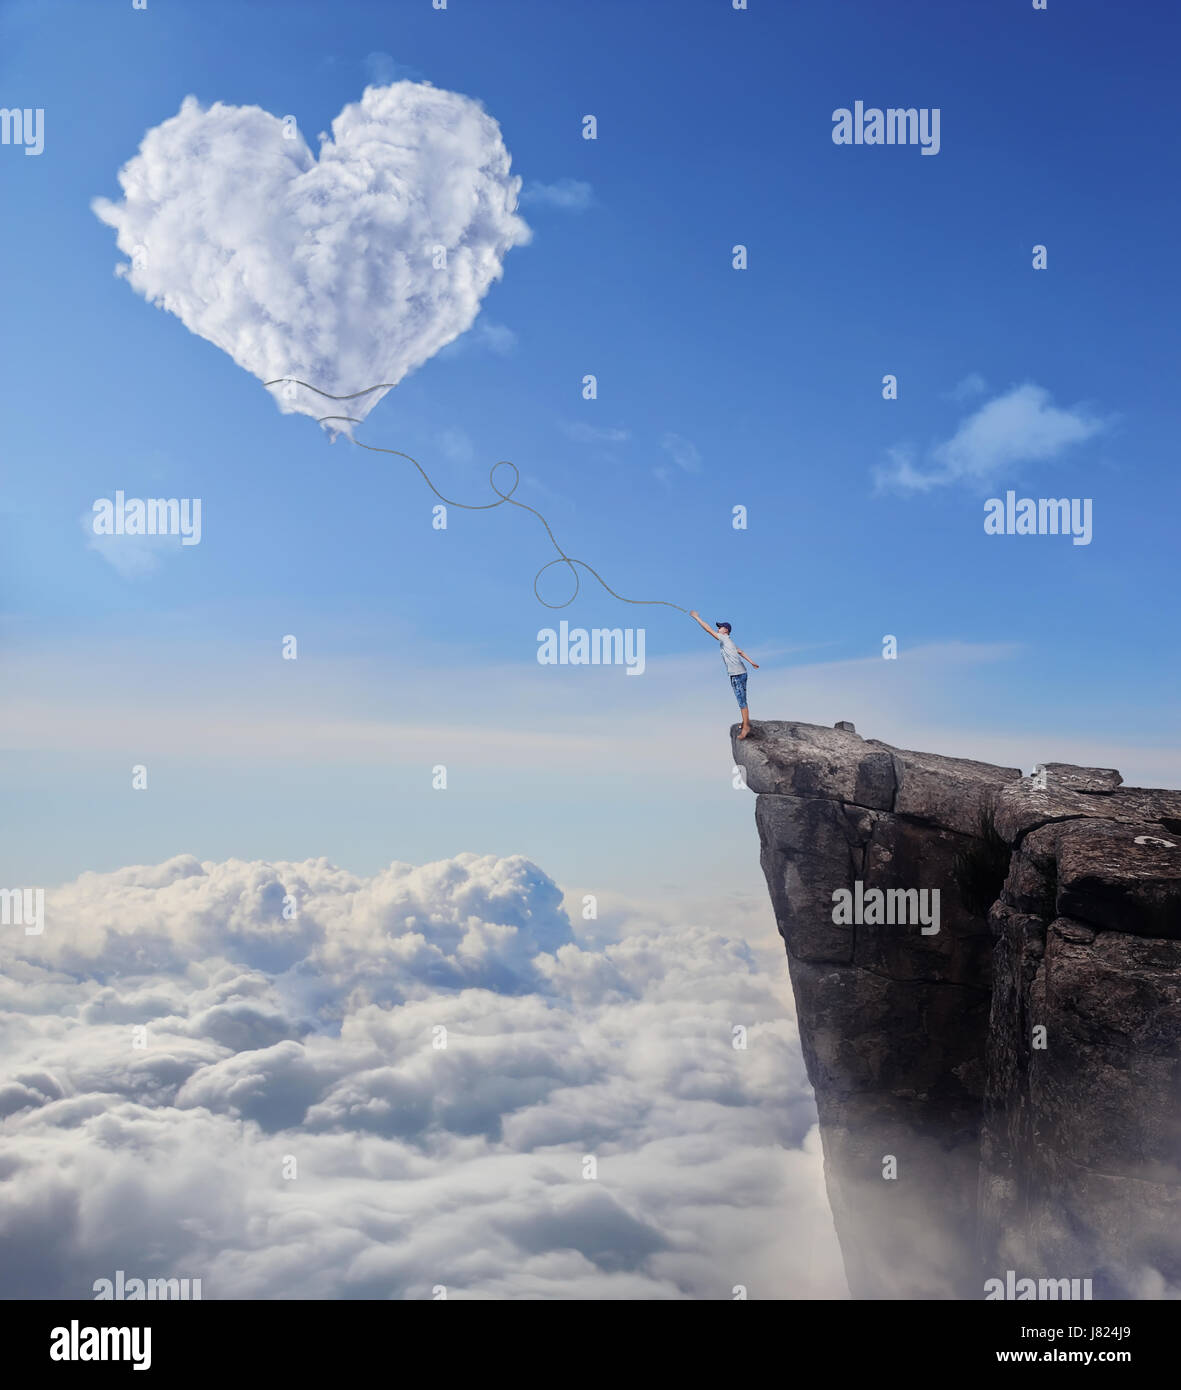 Imaginary view with a boy on the edge of a cliff, trying to catch a heart shaped cloud with a long rope. Follow - Stock Image